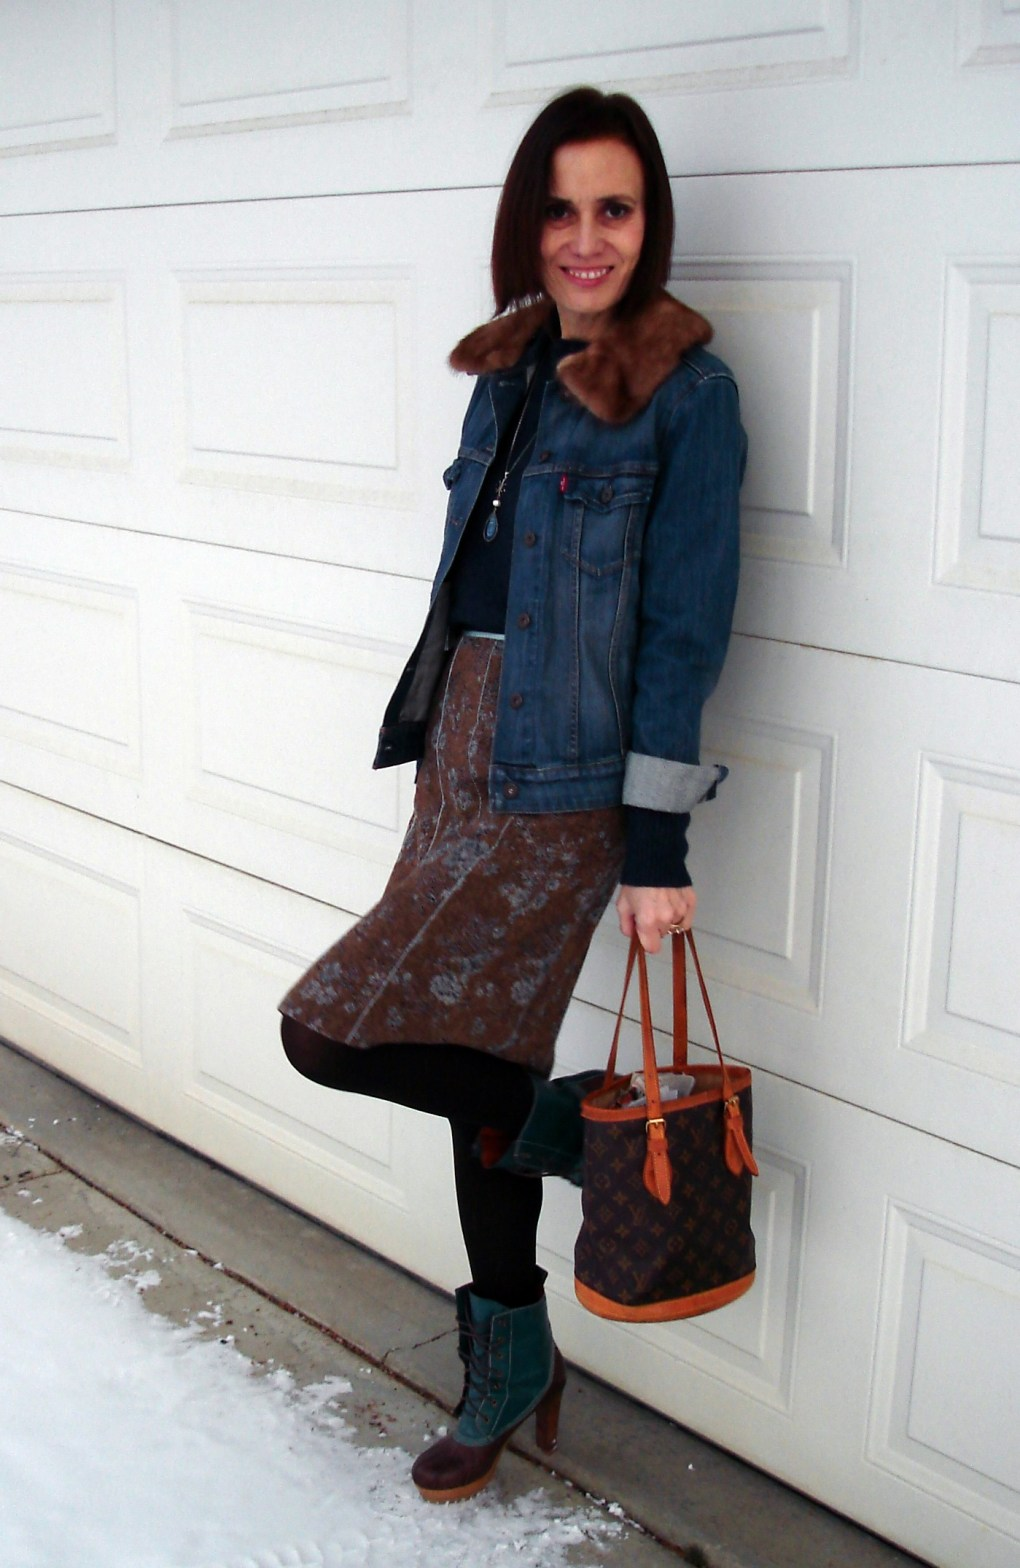 over 50 fashion mature woman wearing a tweed skirt with denim jacket